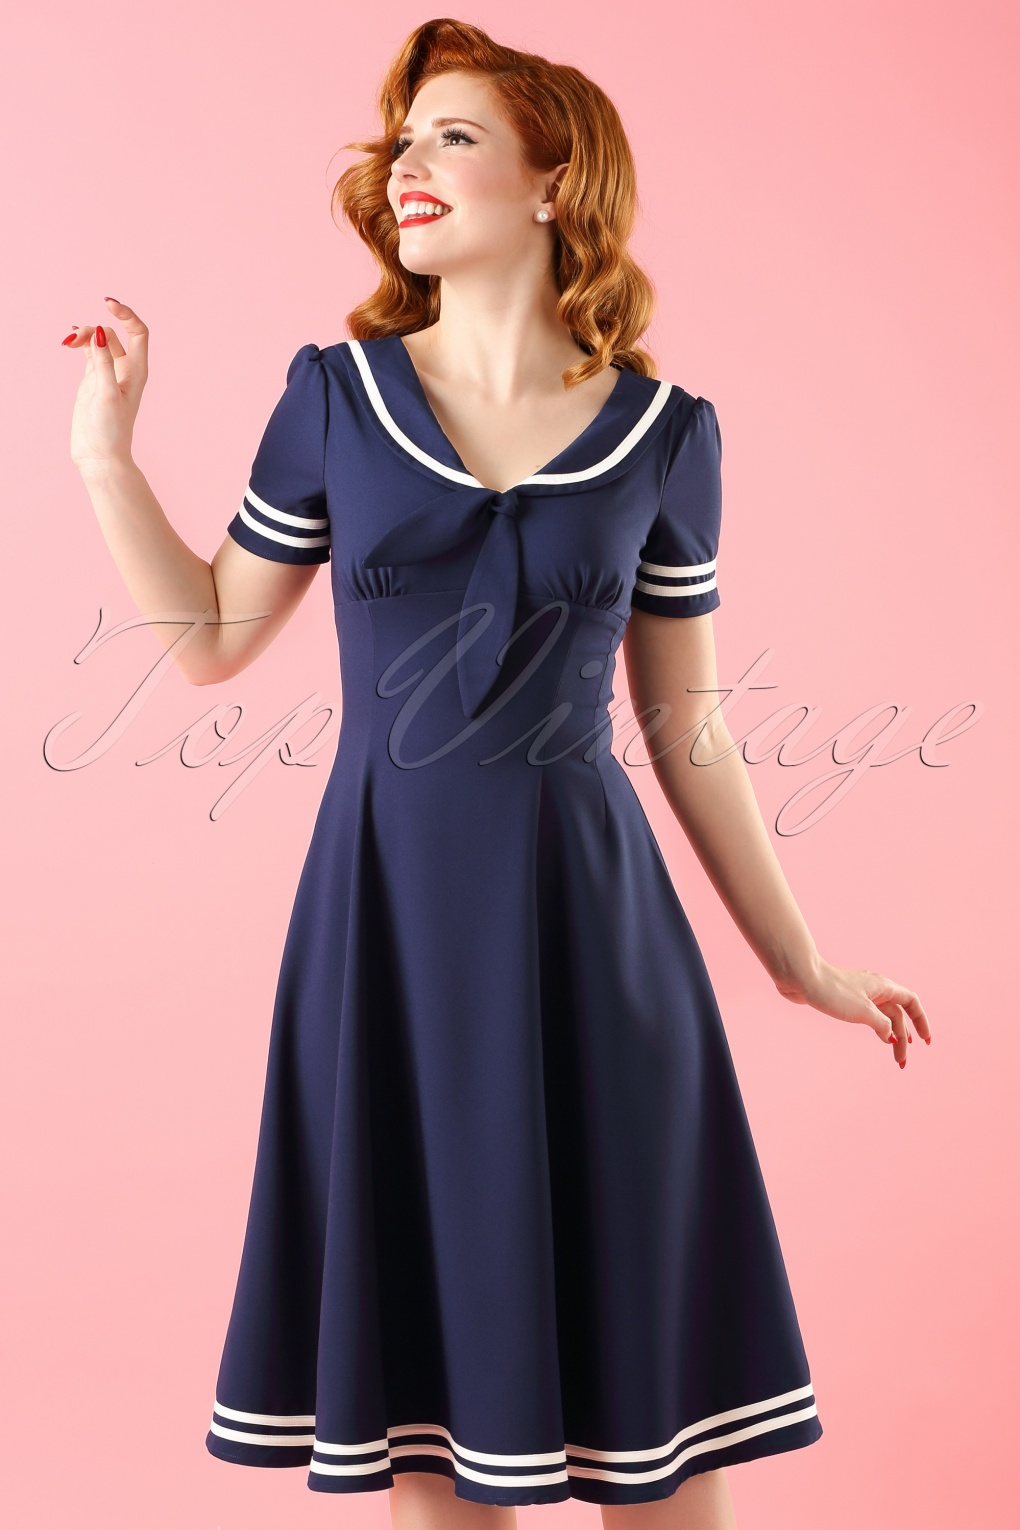 Vintage Tea Dresses, Floral Tea Dresses, Tea Length Dresses 50s Ambleside Swing Dress in Navy £52.83 AT vintagedancer.com